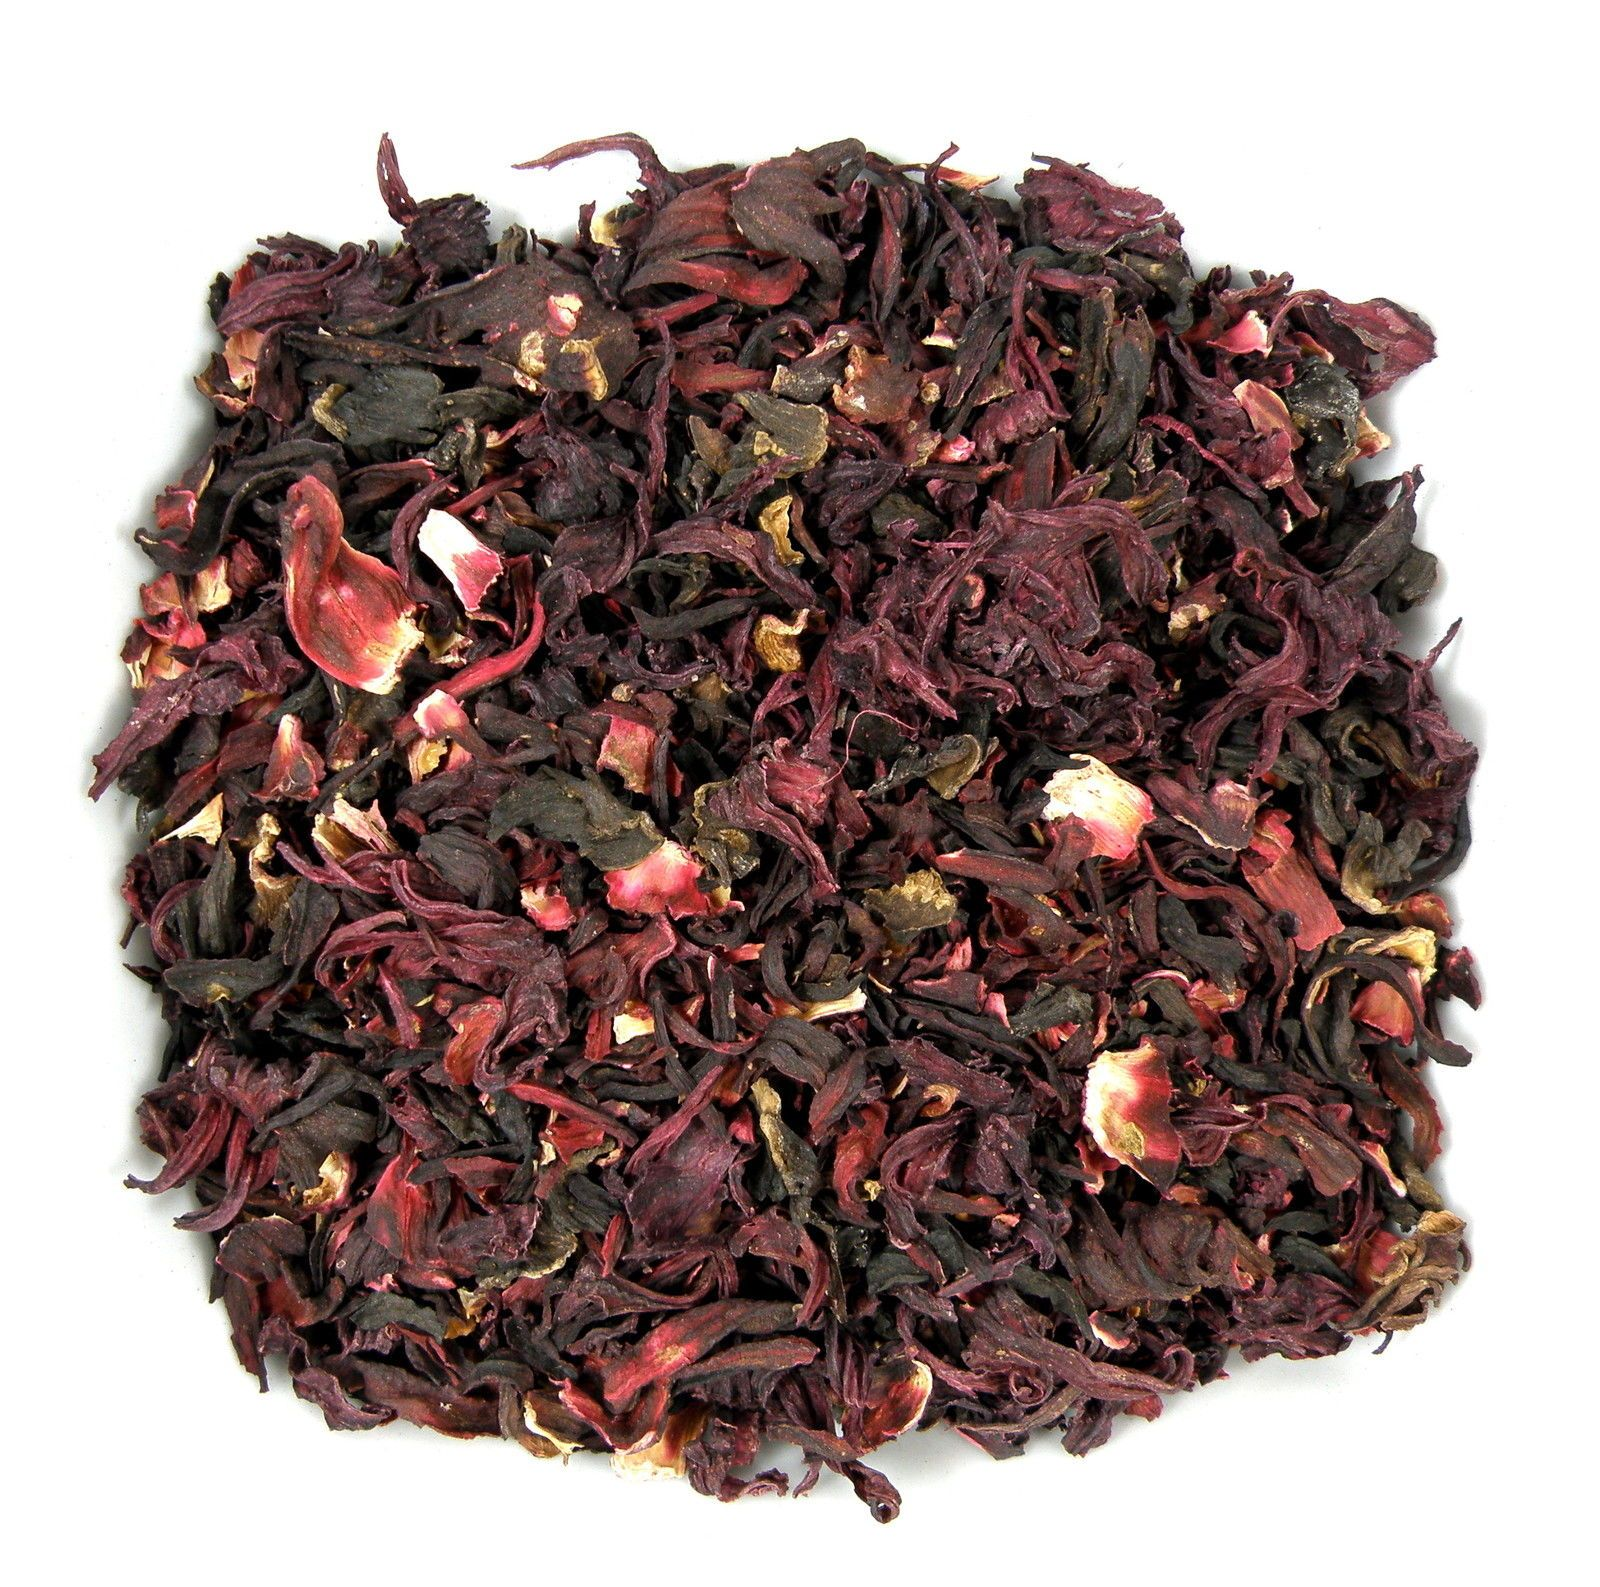 Dried Hibiscus Flowers Loose Herbal Tea 50g 100g 200g 500g 1kg View More On The Link Http Www Ze Dried Hibiscus Flowers Herbalism Non Alcoholic Drinks